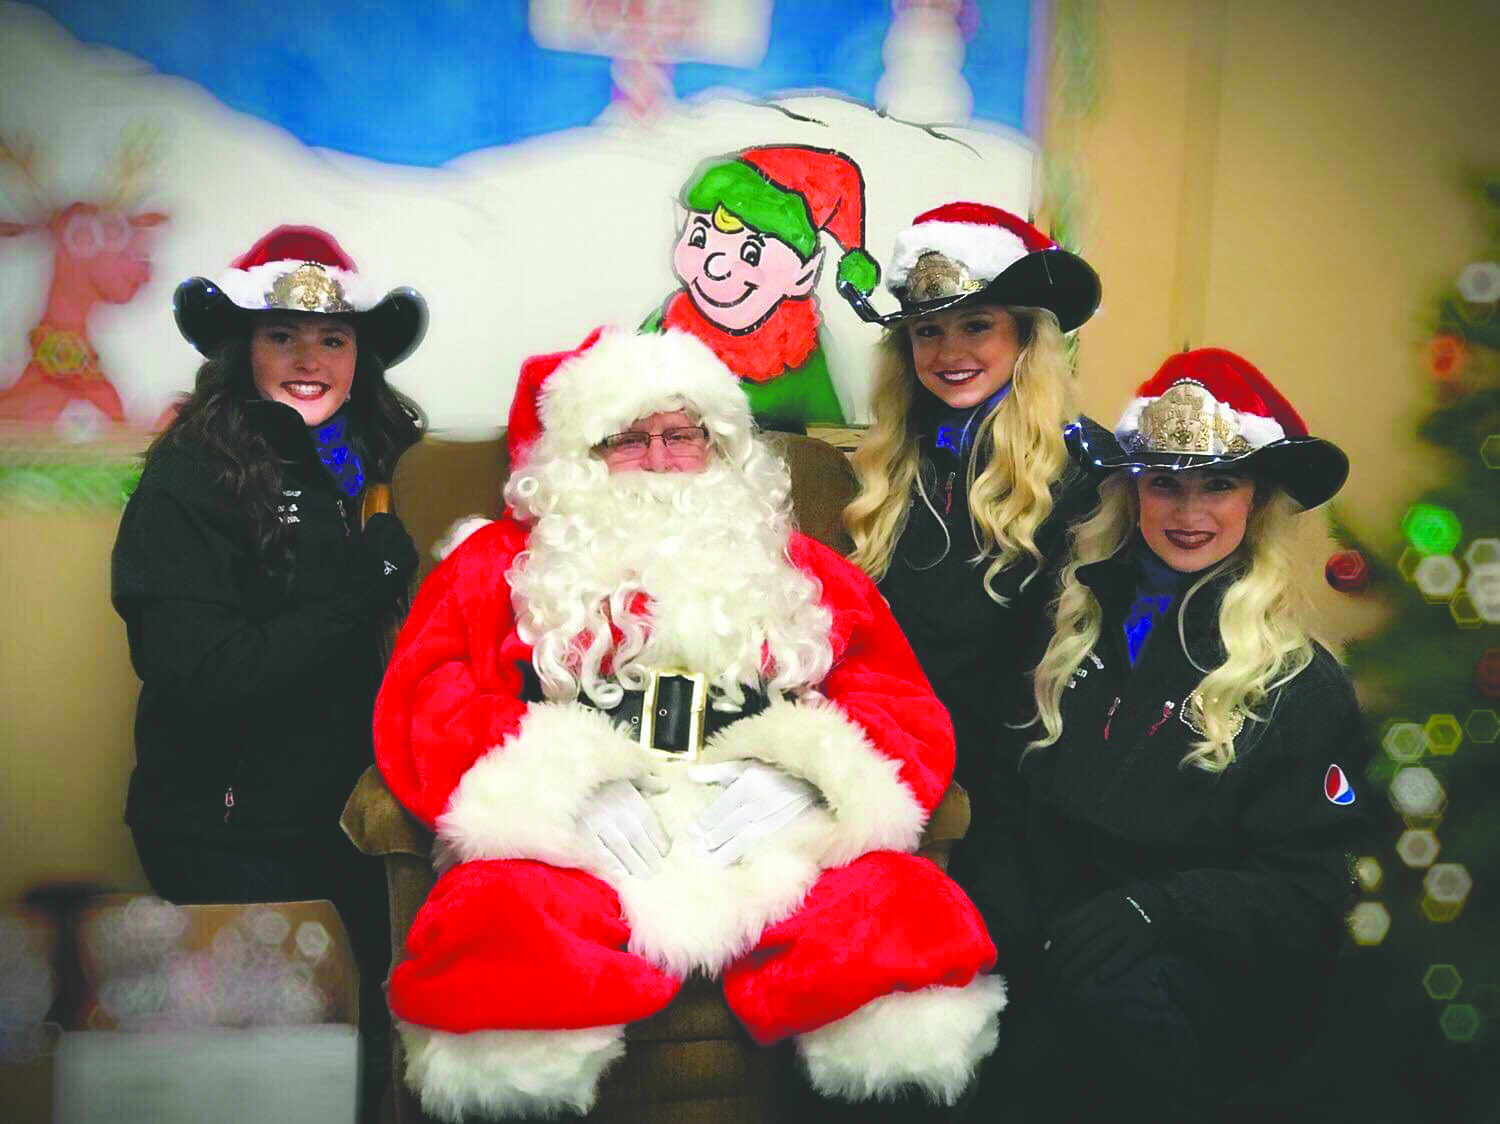 Lewiston's Roundup Royalty paid a visit to Santa on Dec. 9. Photo courtesy of Amie Greenfield.